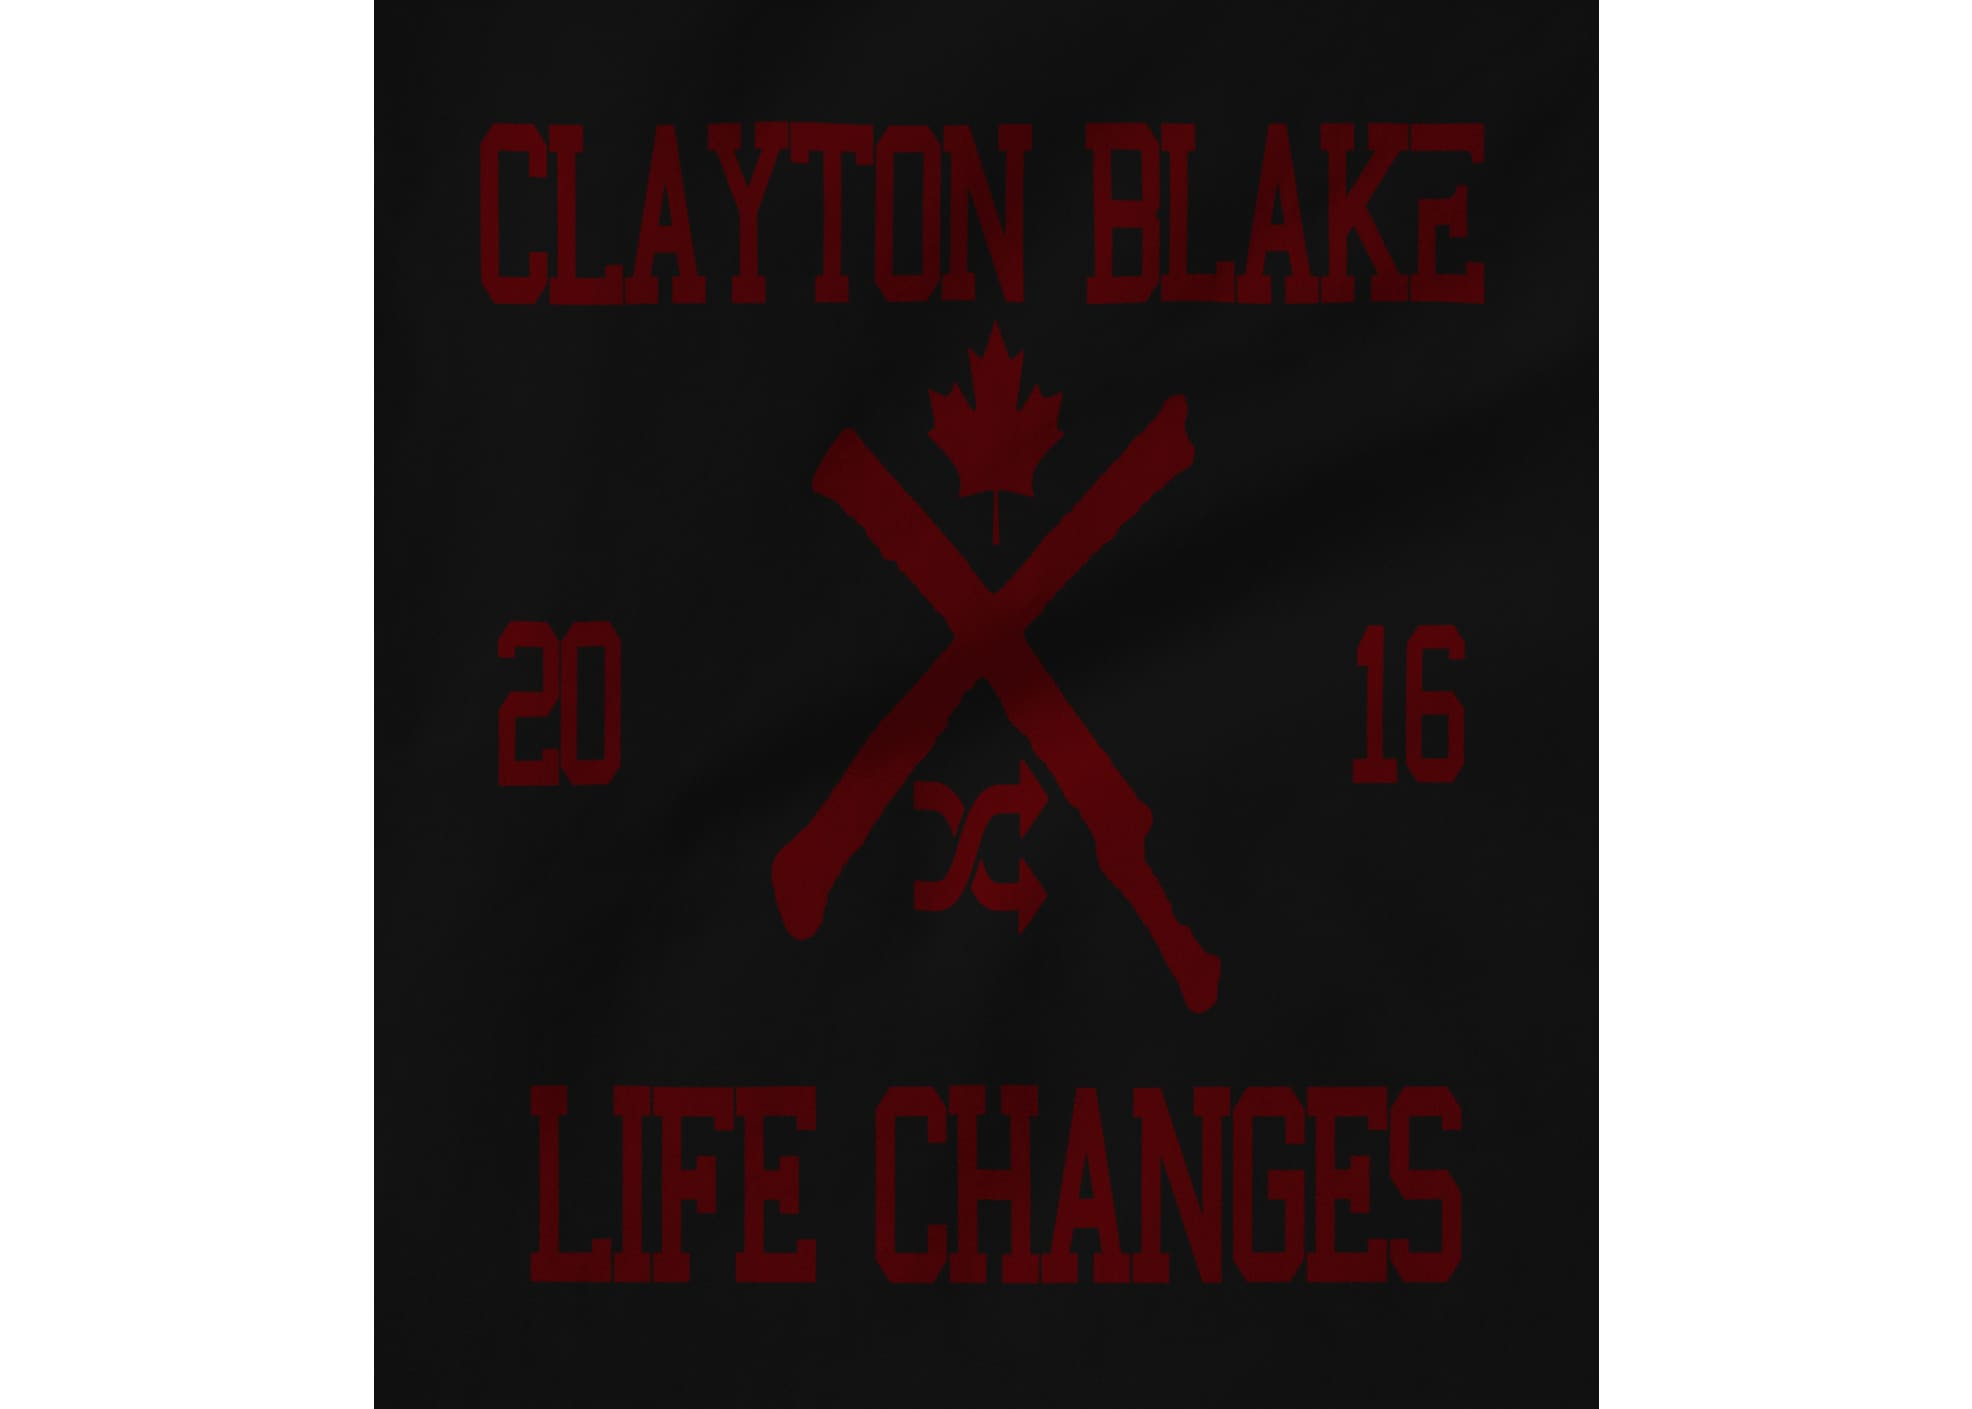 Clayton blake life changes college style 1495344933